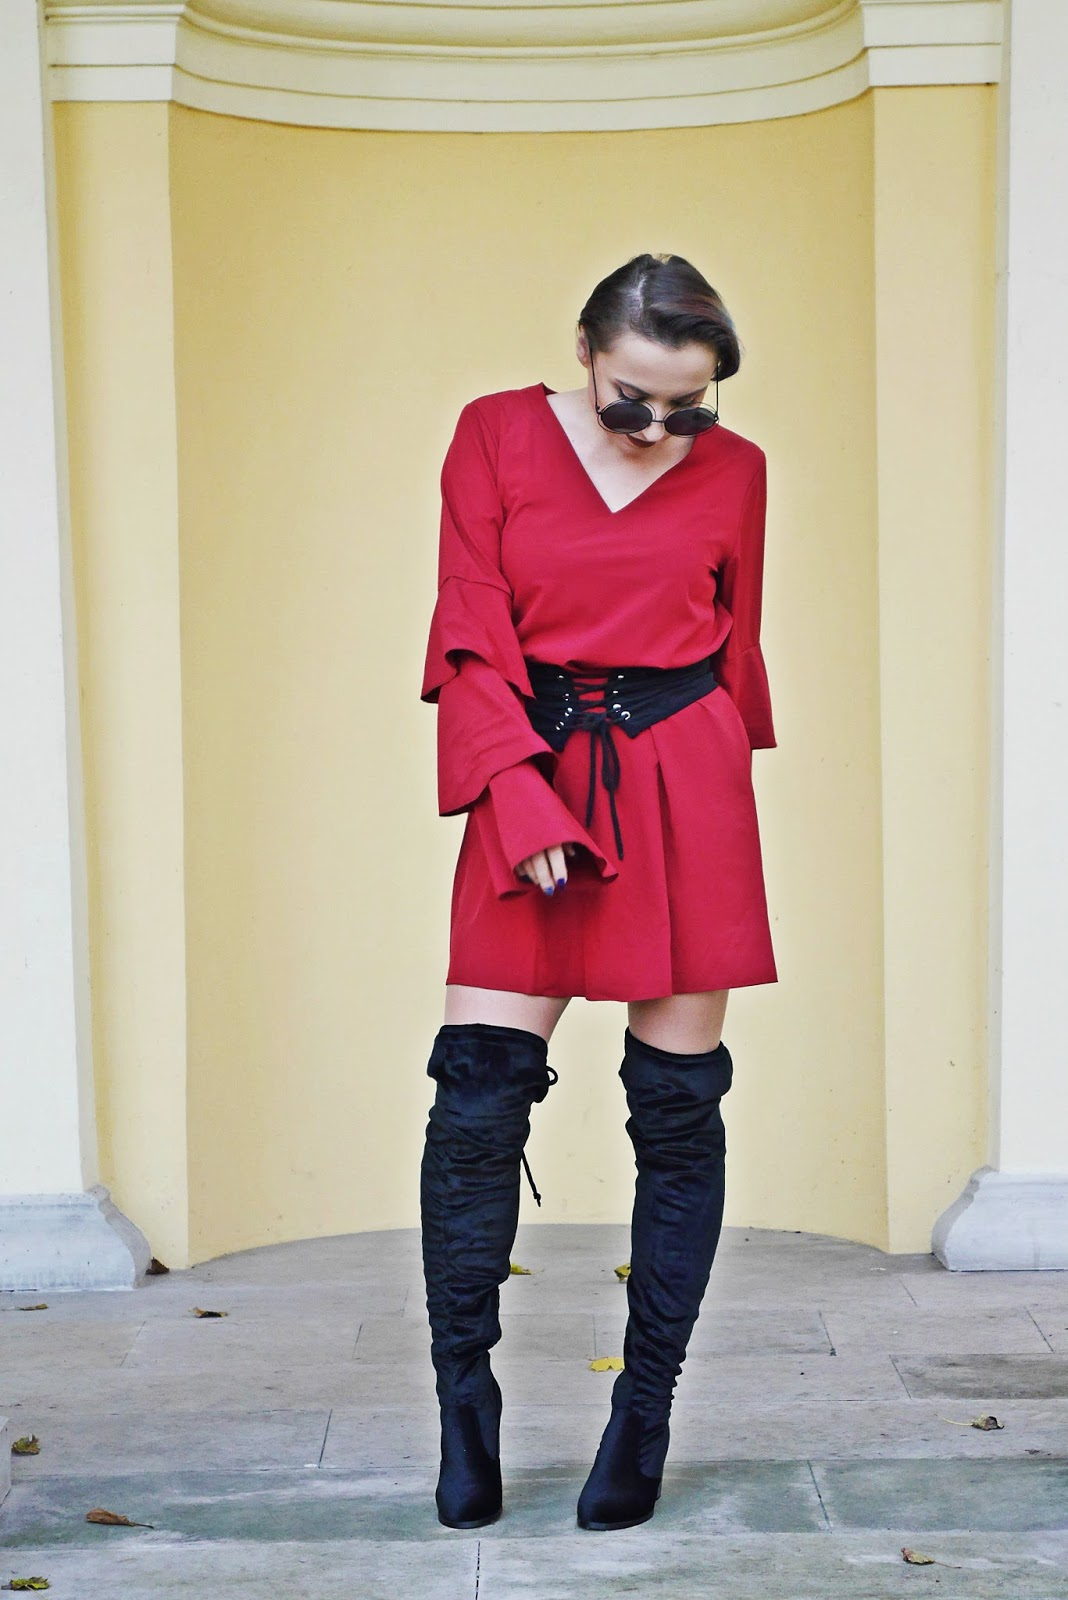 10_gamiss_high_knee_boots_burgundy_dress_karyn_blog_modowy_061117